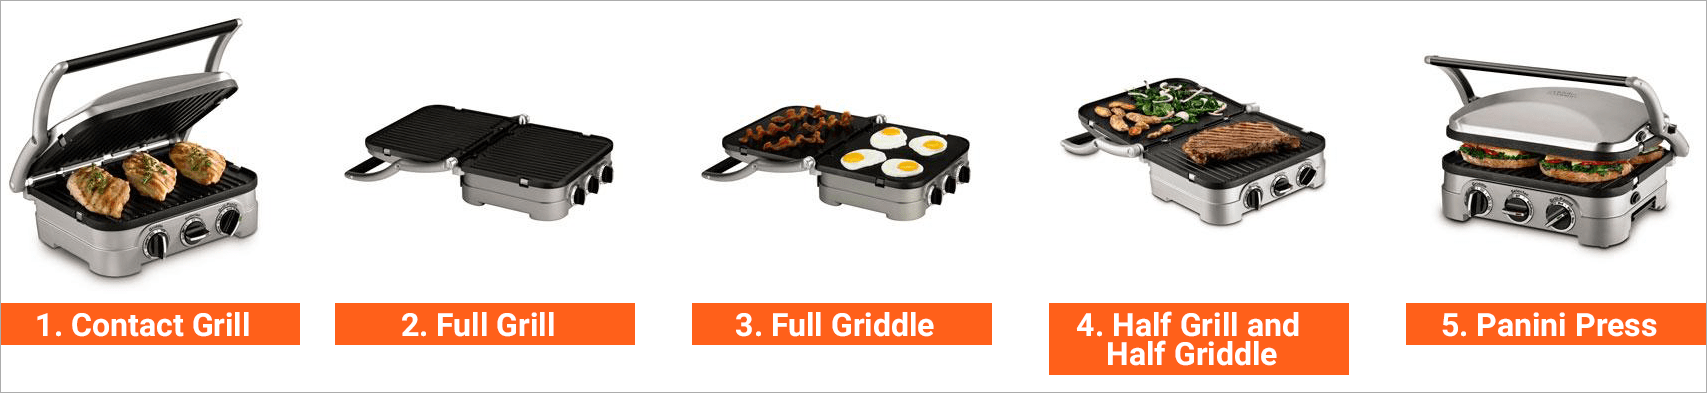 Cuisinart-Grill-5-Options